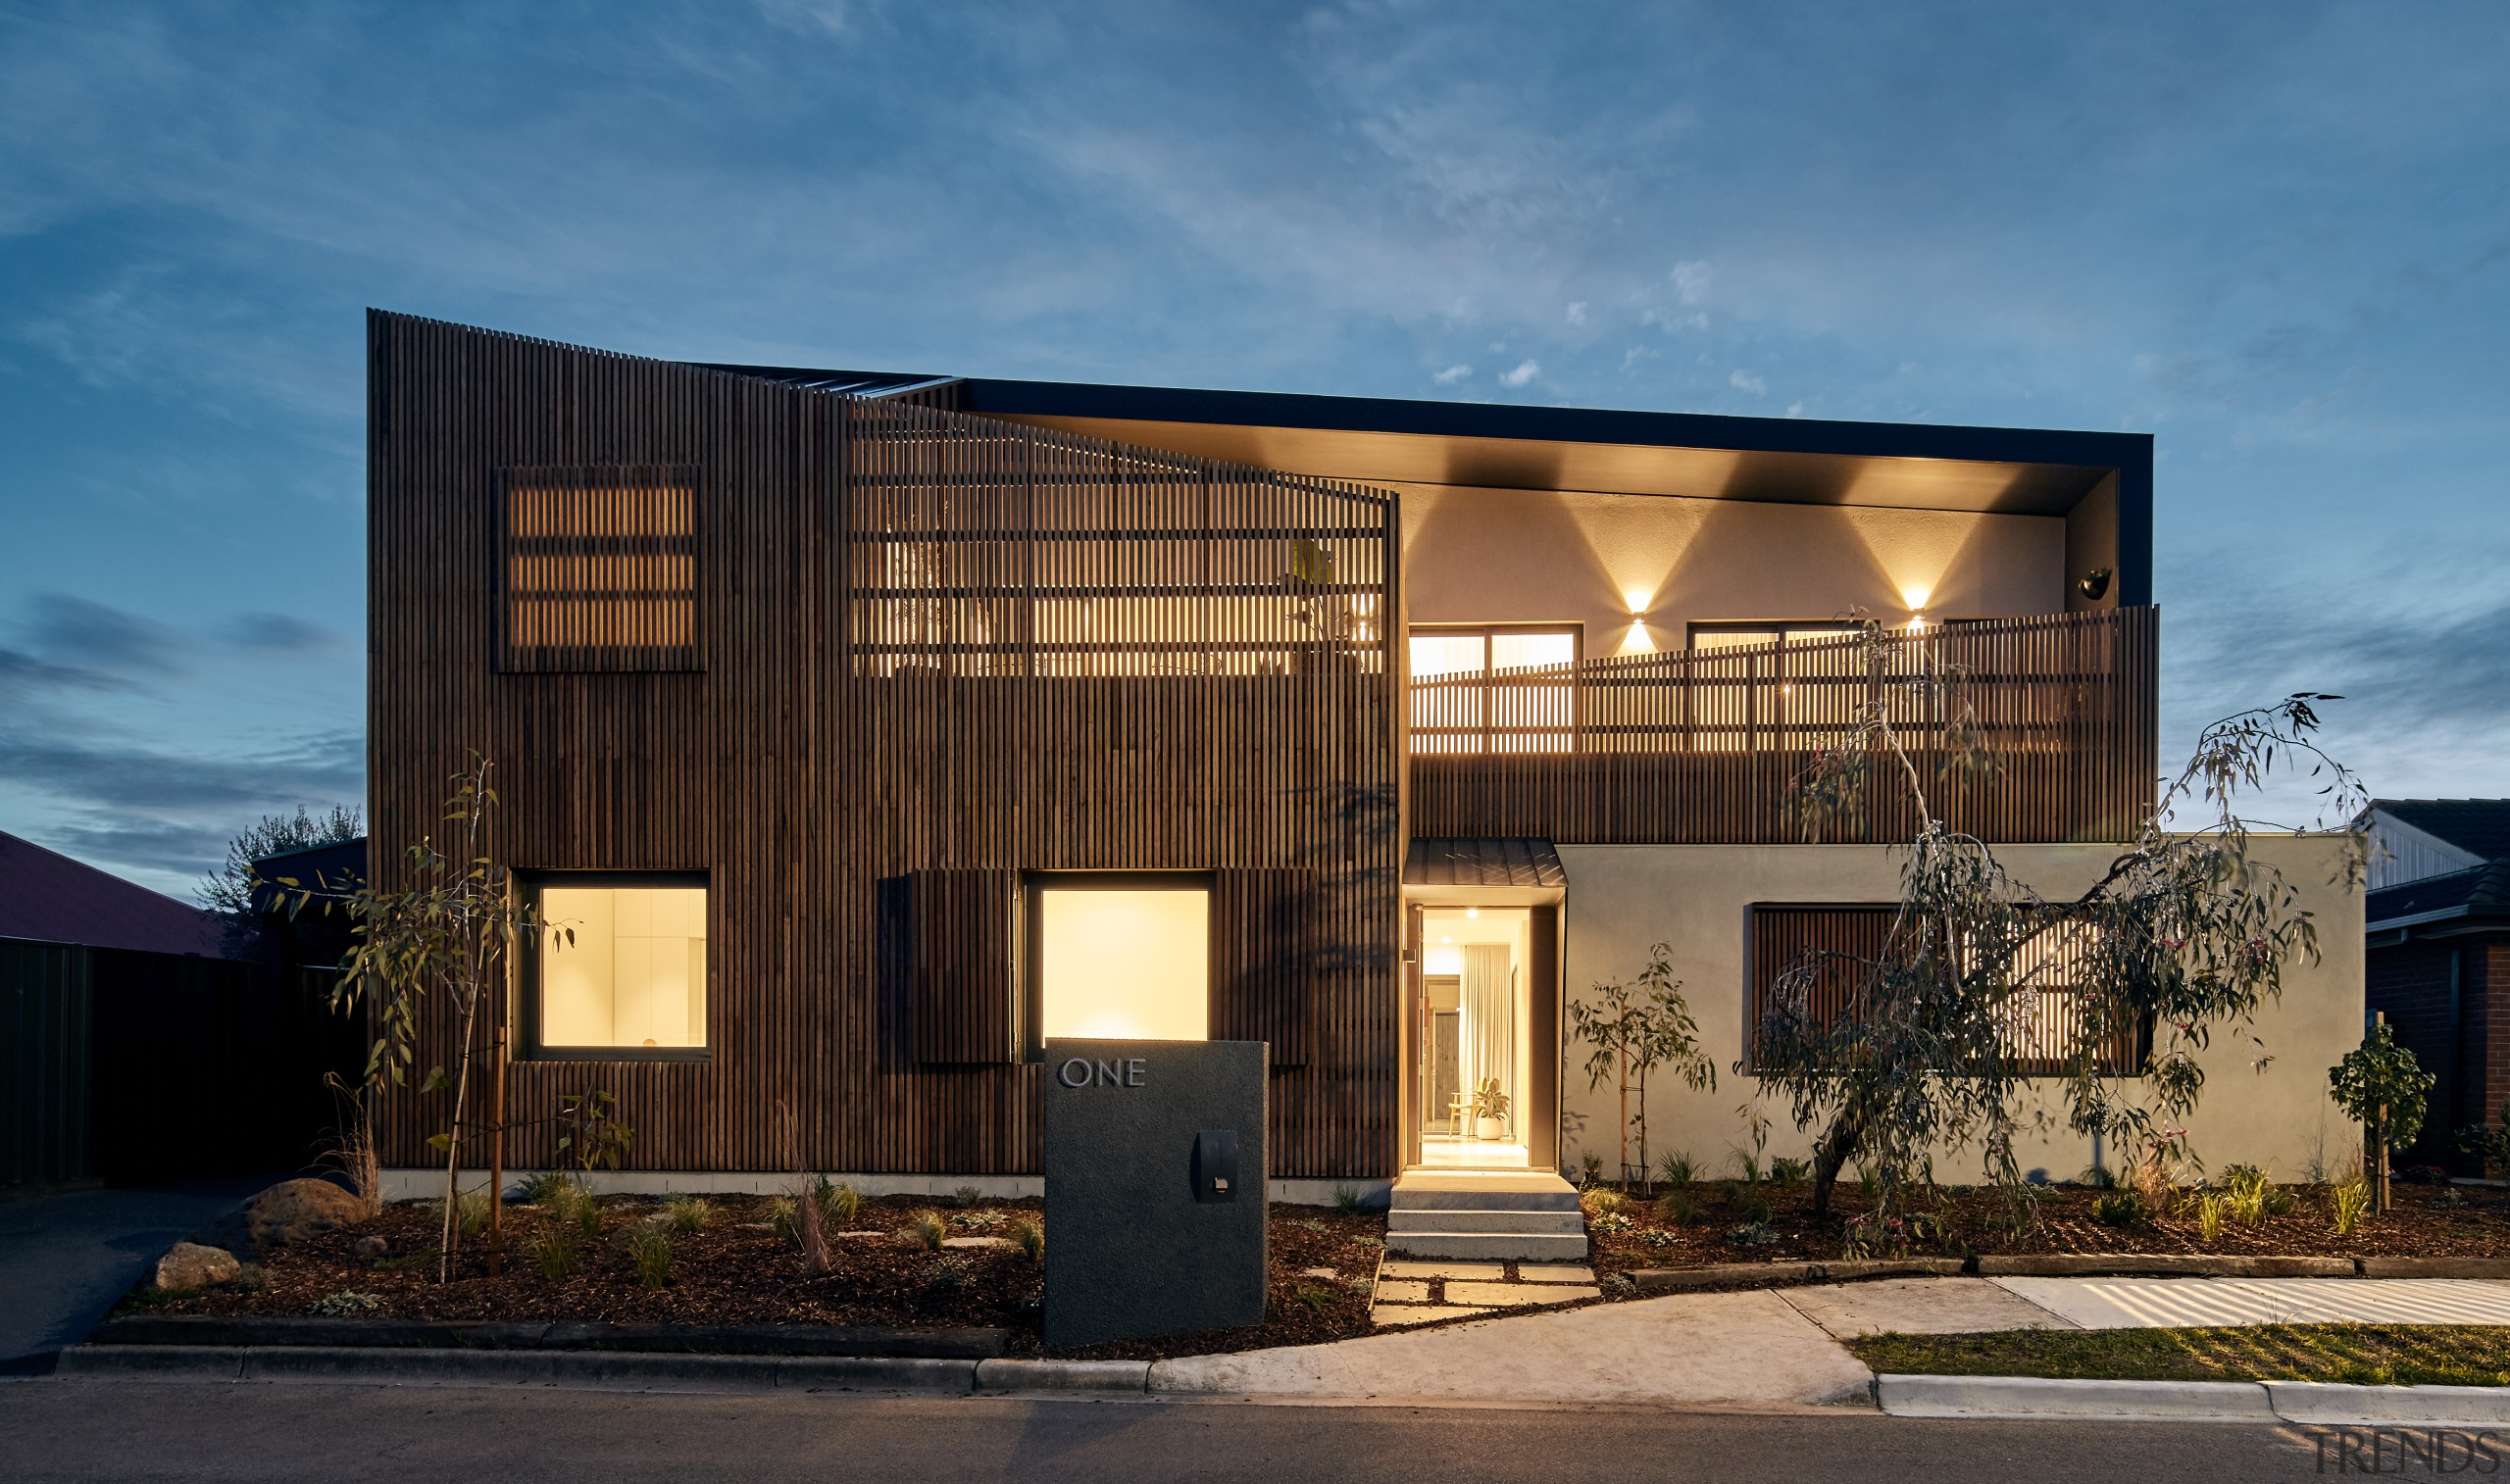 The Star Architecture-designed home at dusk. architecture, building, commercial building, design, facade, home, house, interior design, material property, mixed-use, property, real estate, residential area, sky, tree, black, teal